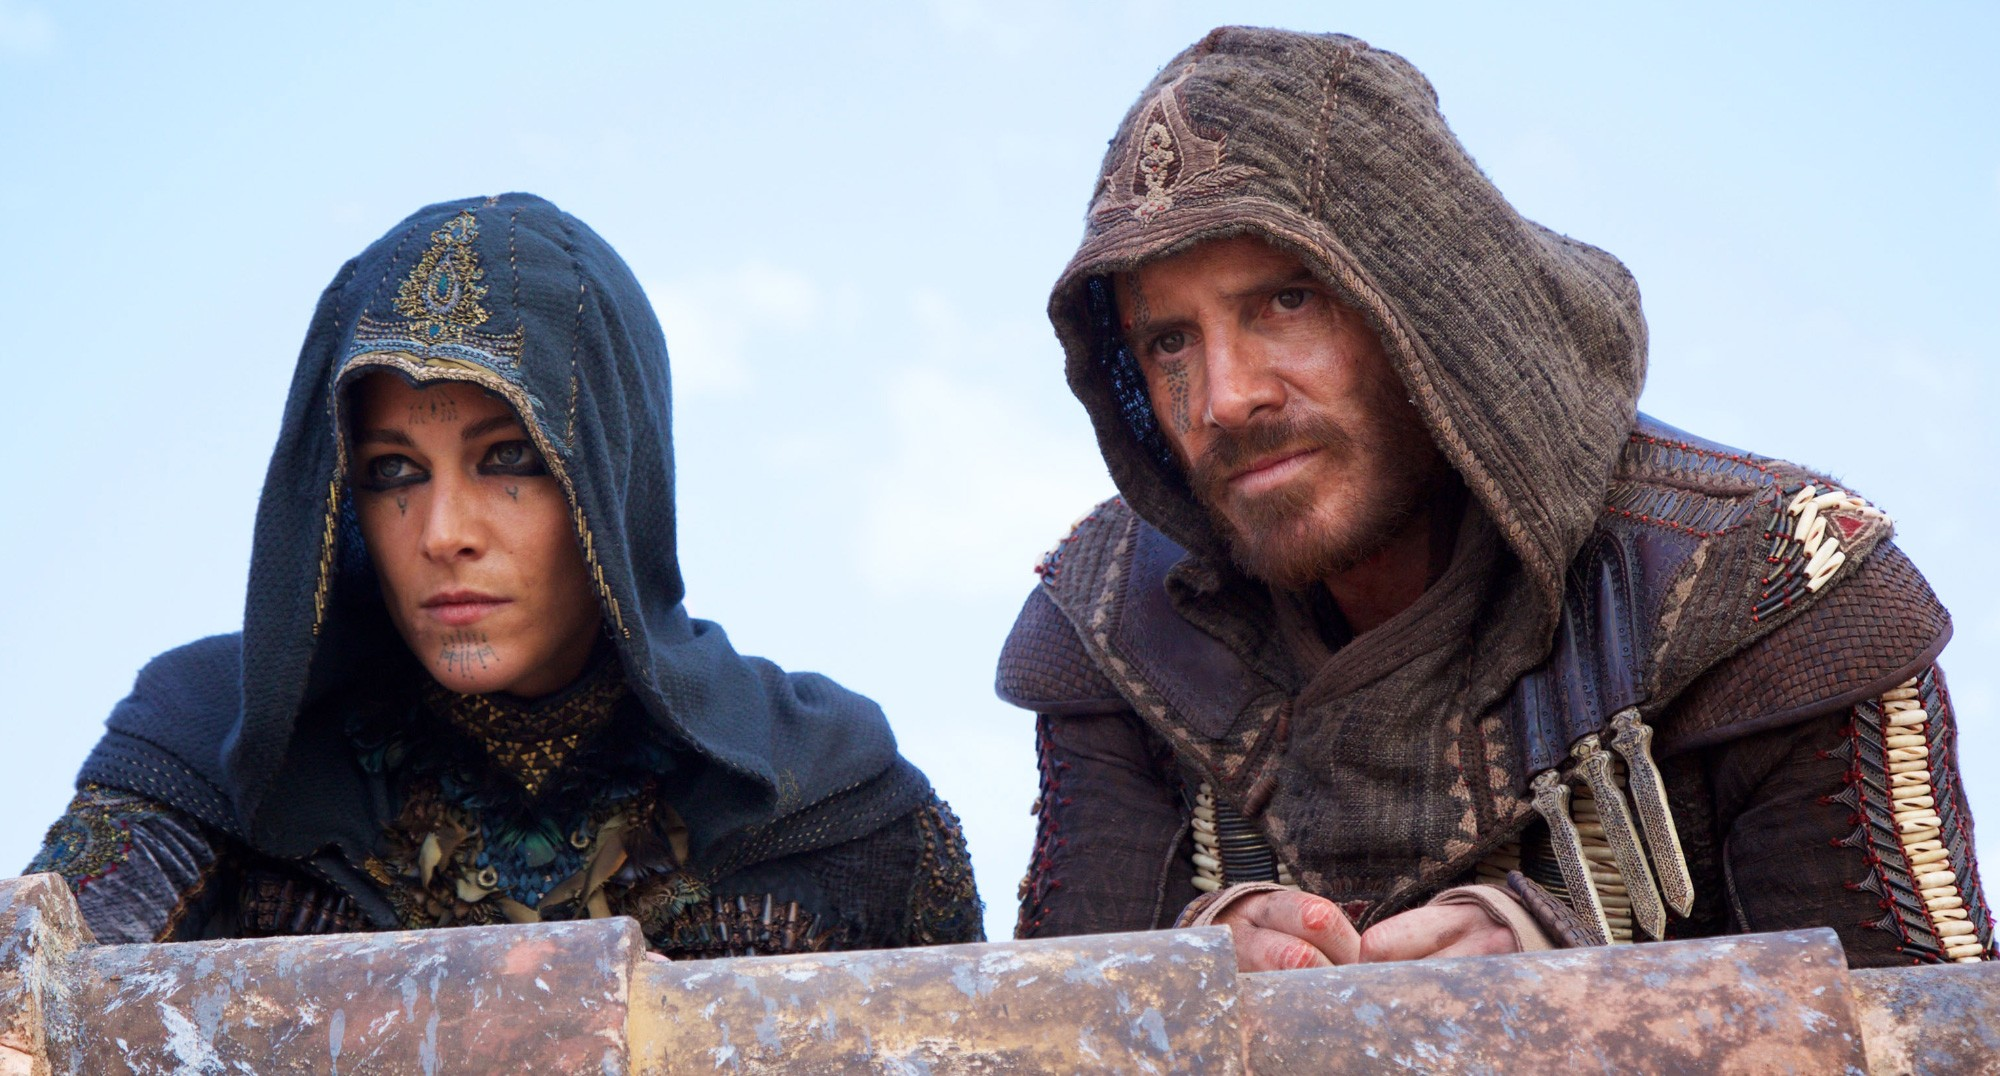 assassin's creed il film aguilar e maria cast